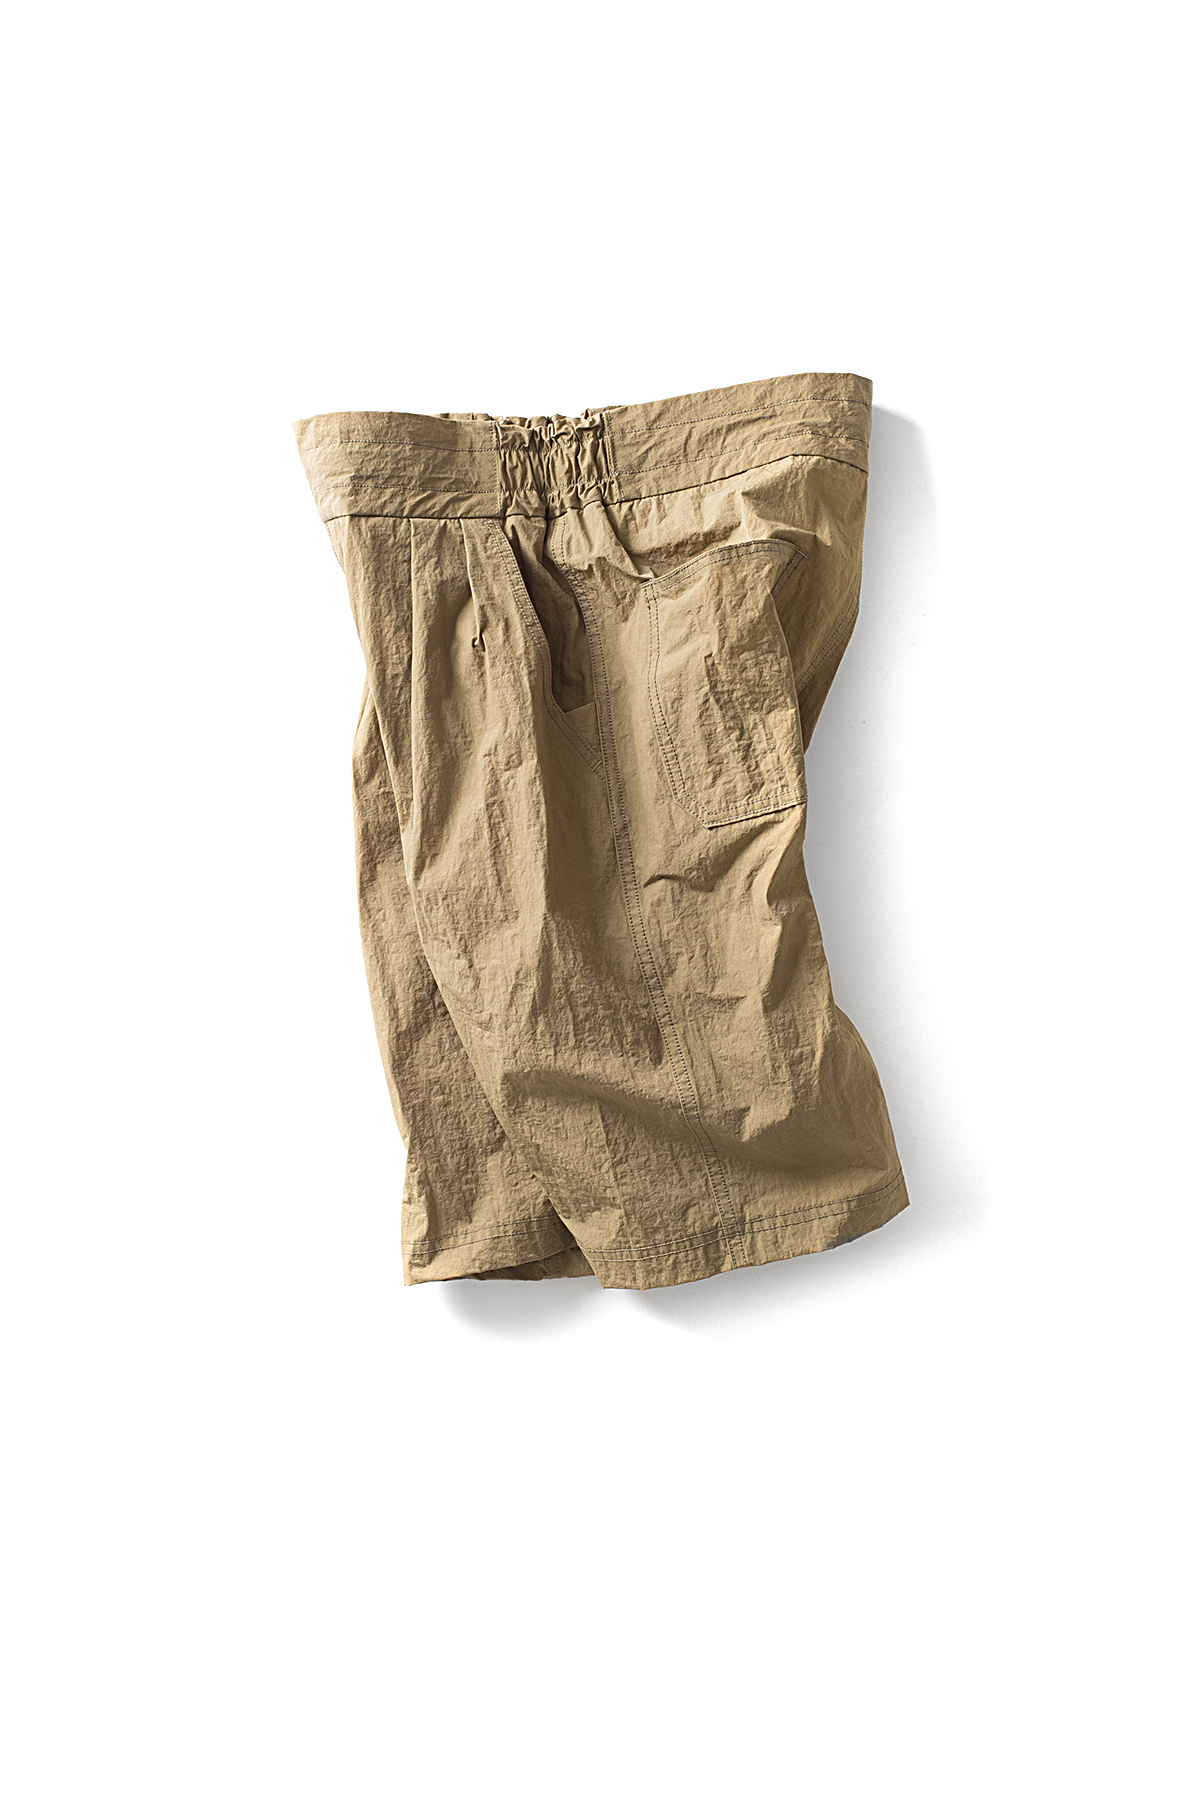 WHITE MOUNTAINEERING : 2-Tuck Wide Short Pants (Beige)